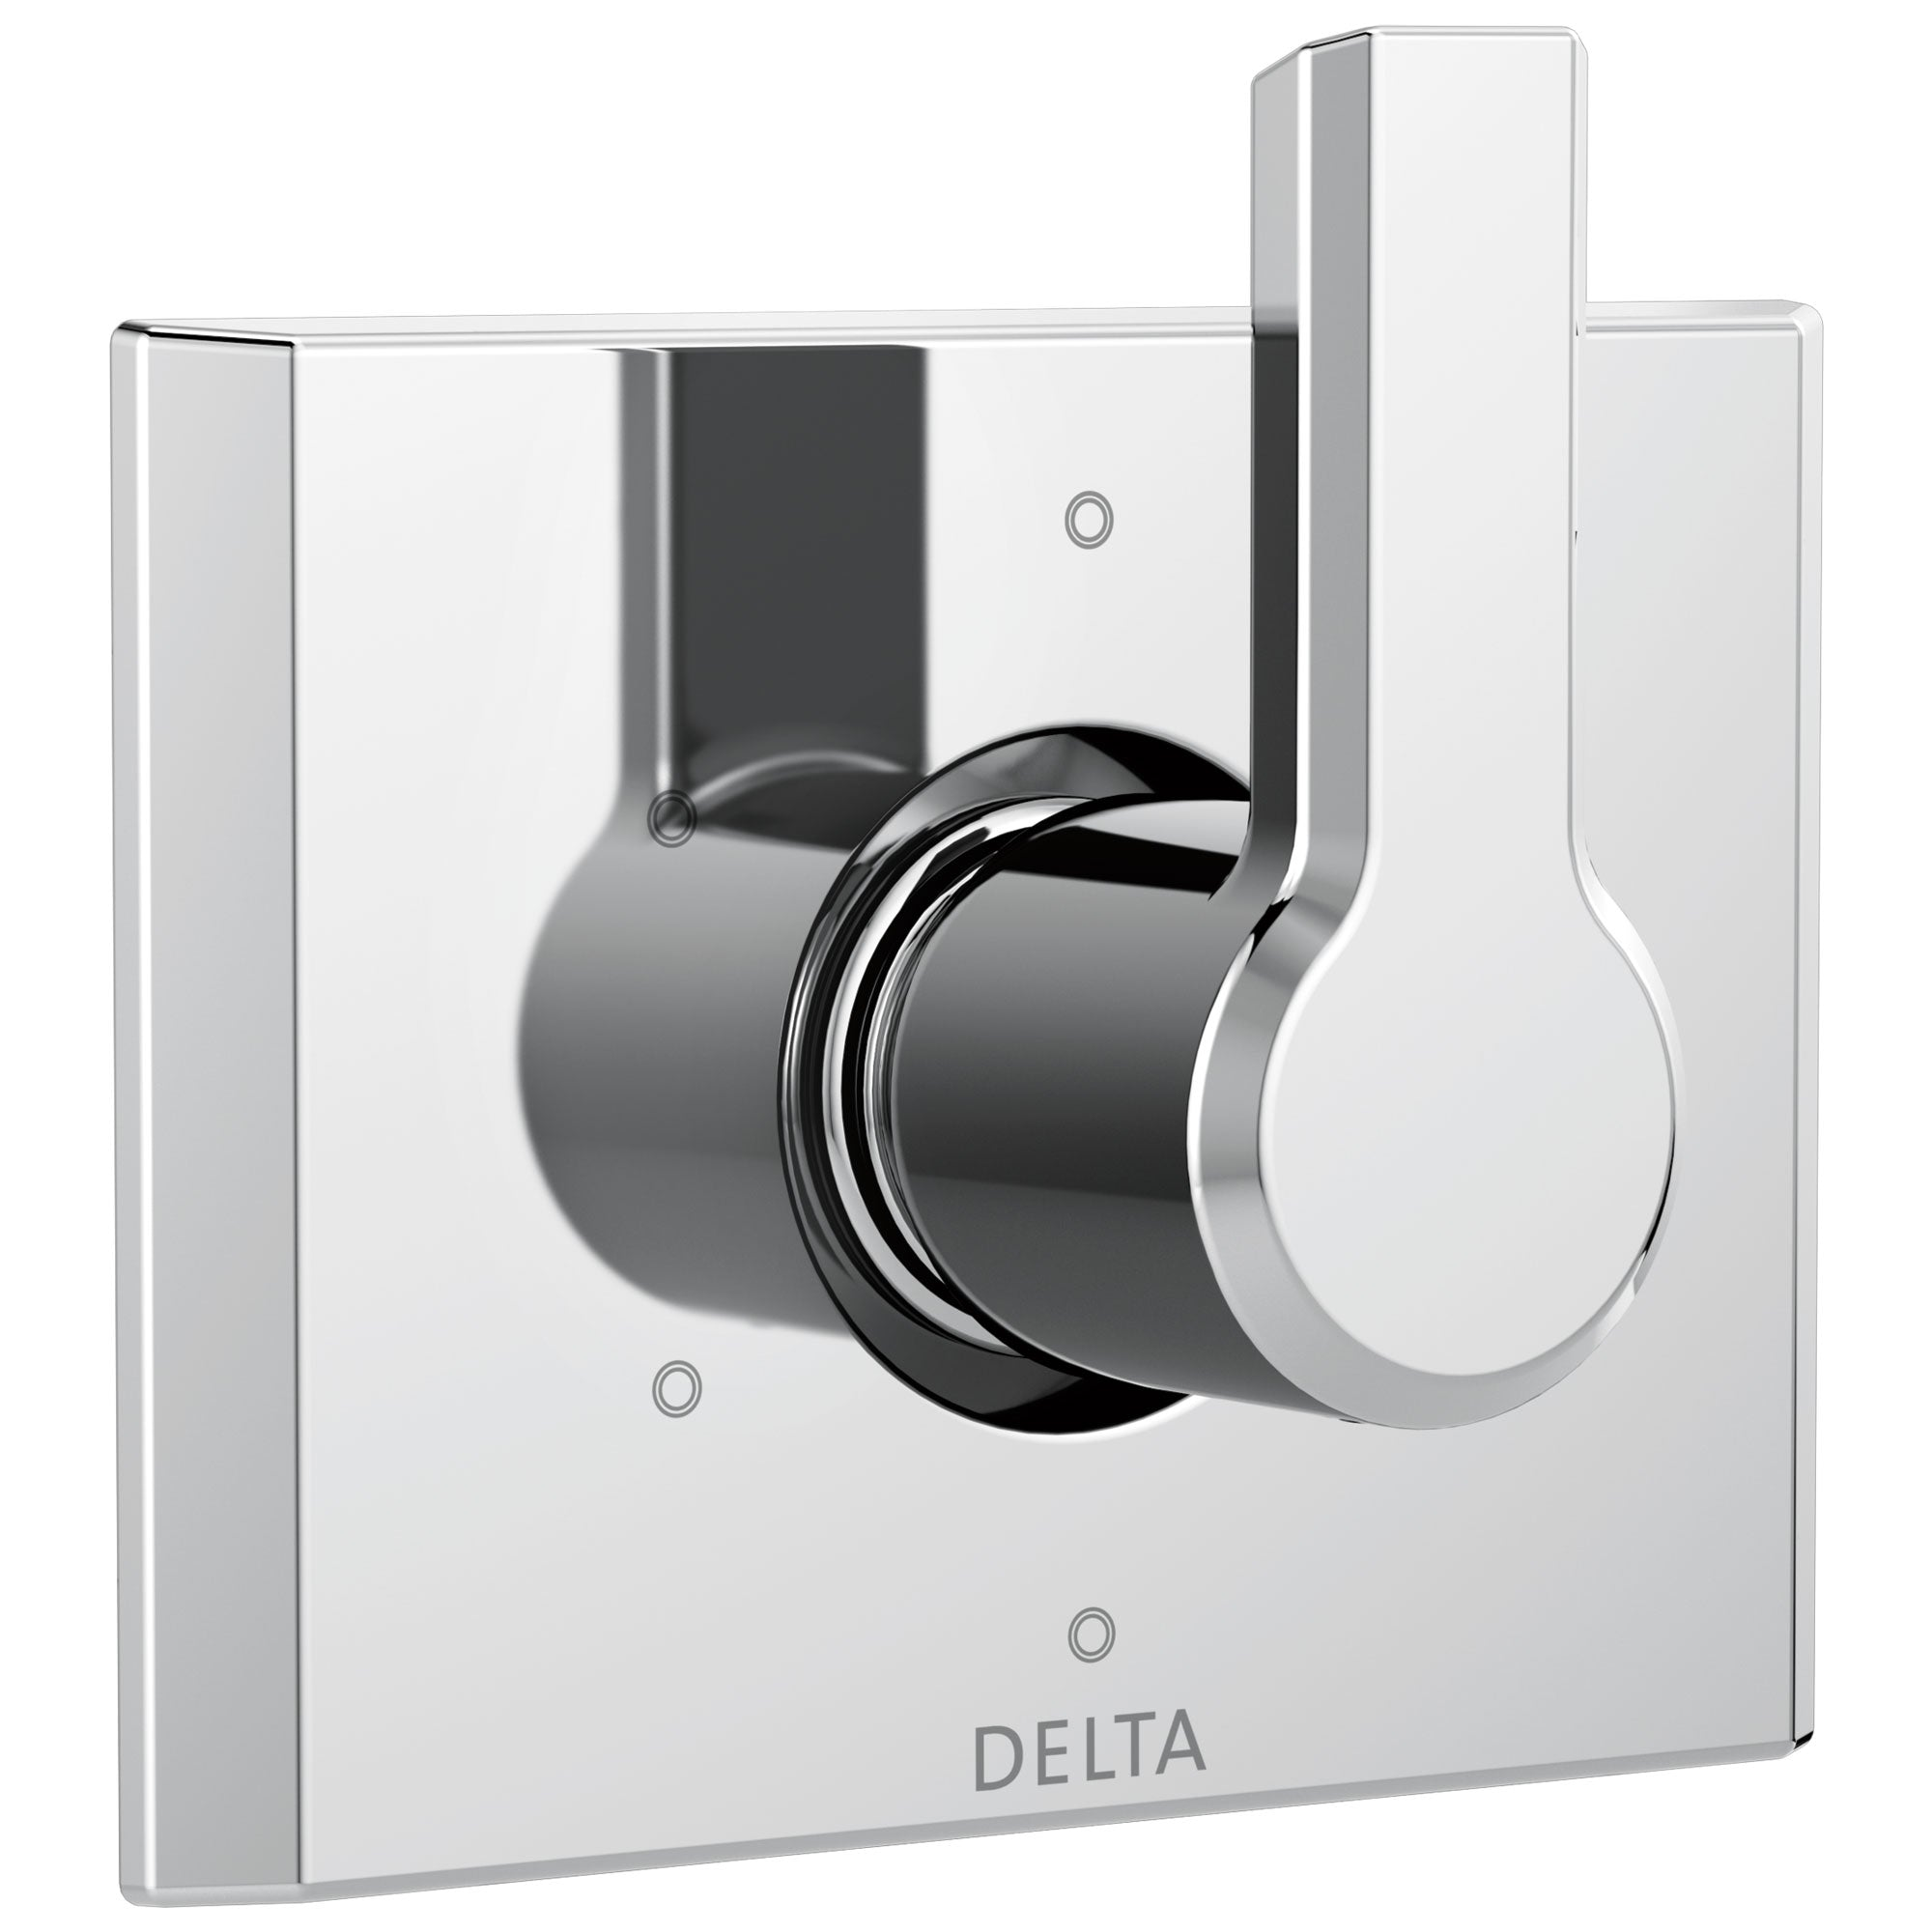 Delta Pivotal Chrome Finish 6-Setting 3-Port Shower Diverter Trim Kit (Requires Valve) DT11999